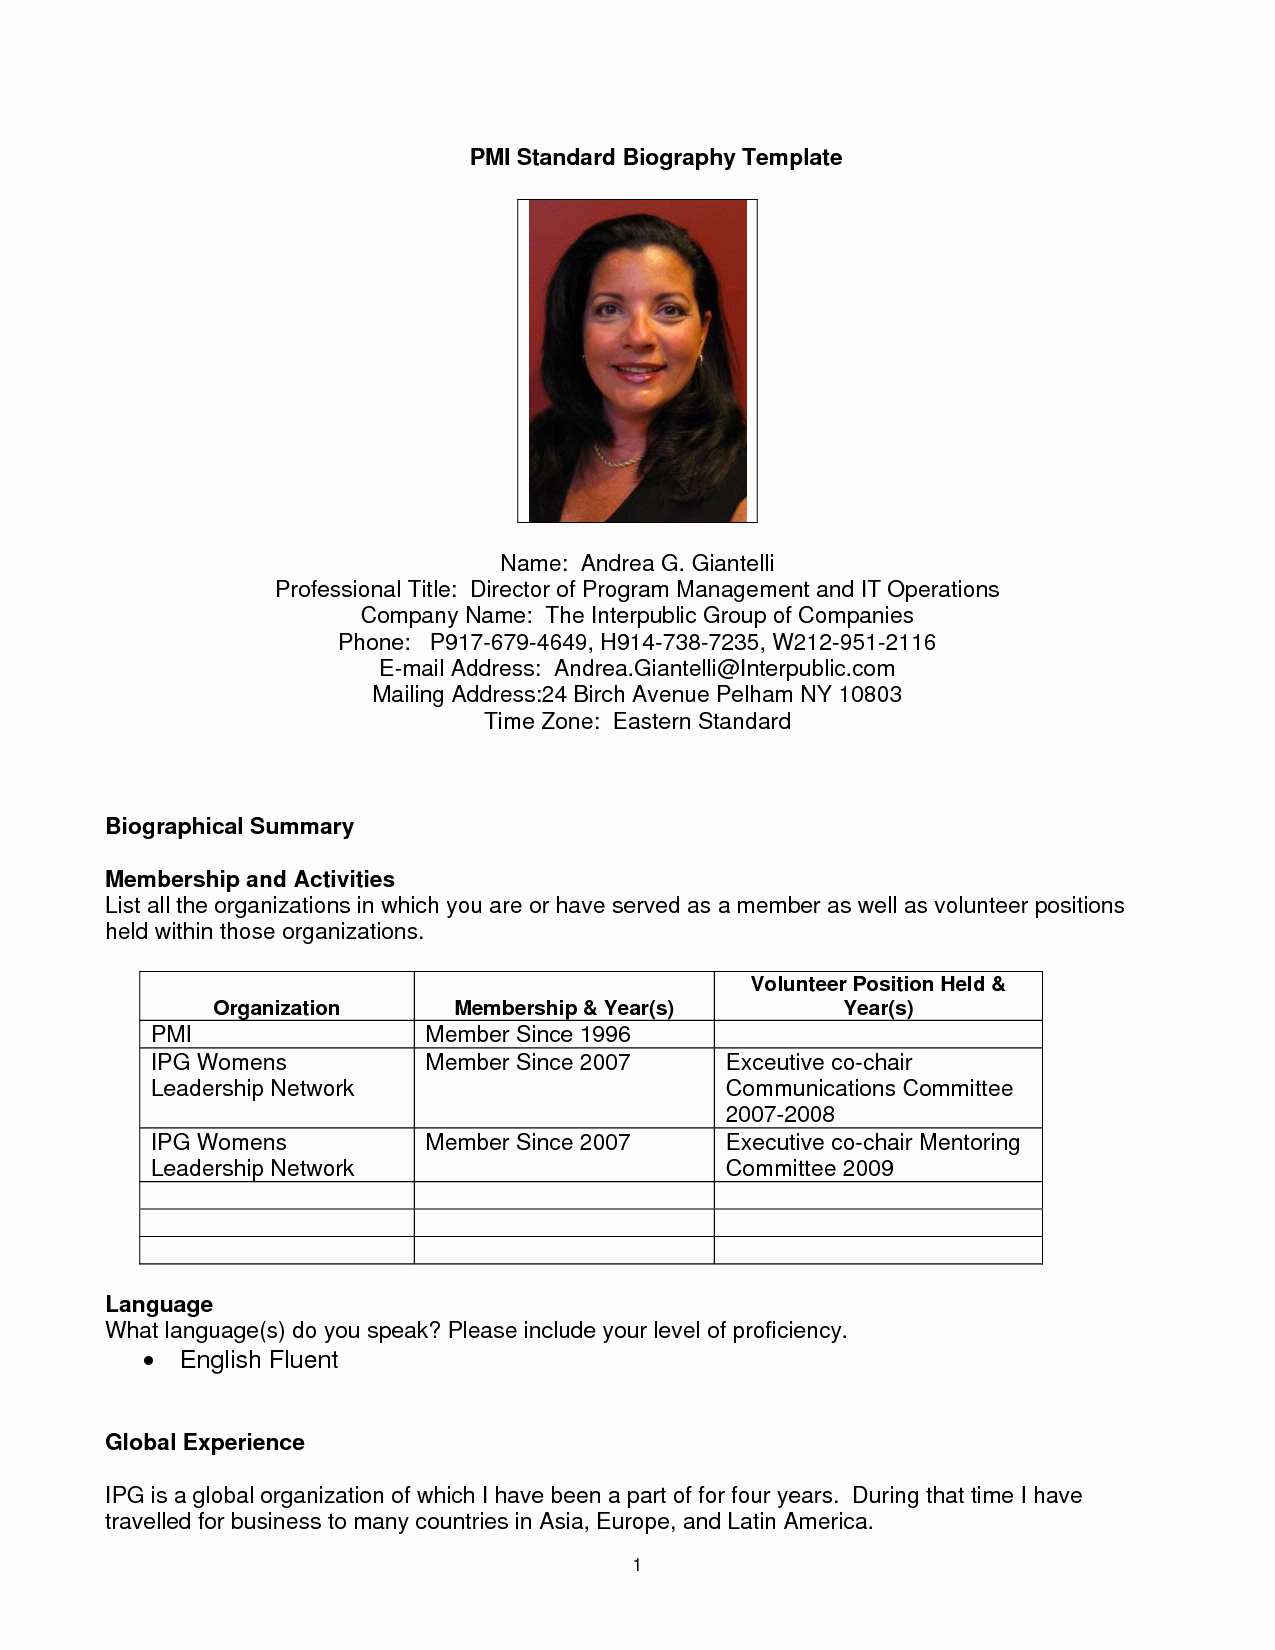 Professional Bio Template Word Best Of Professional Bio Template